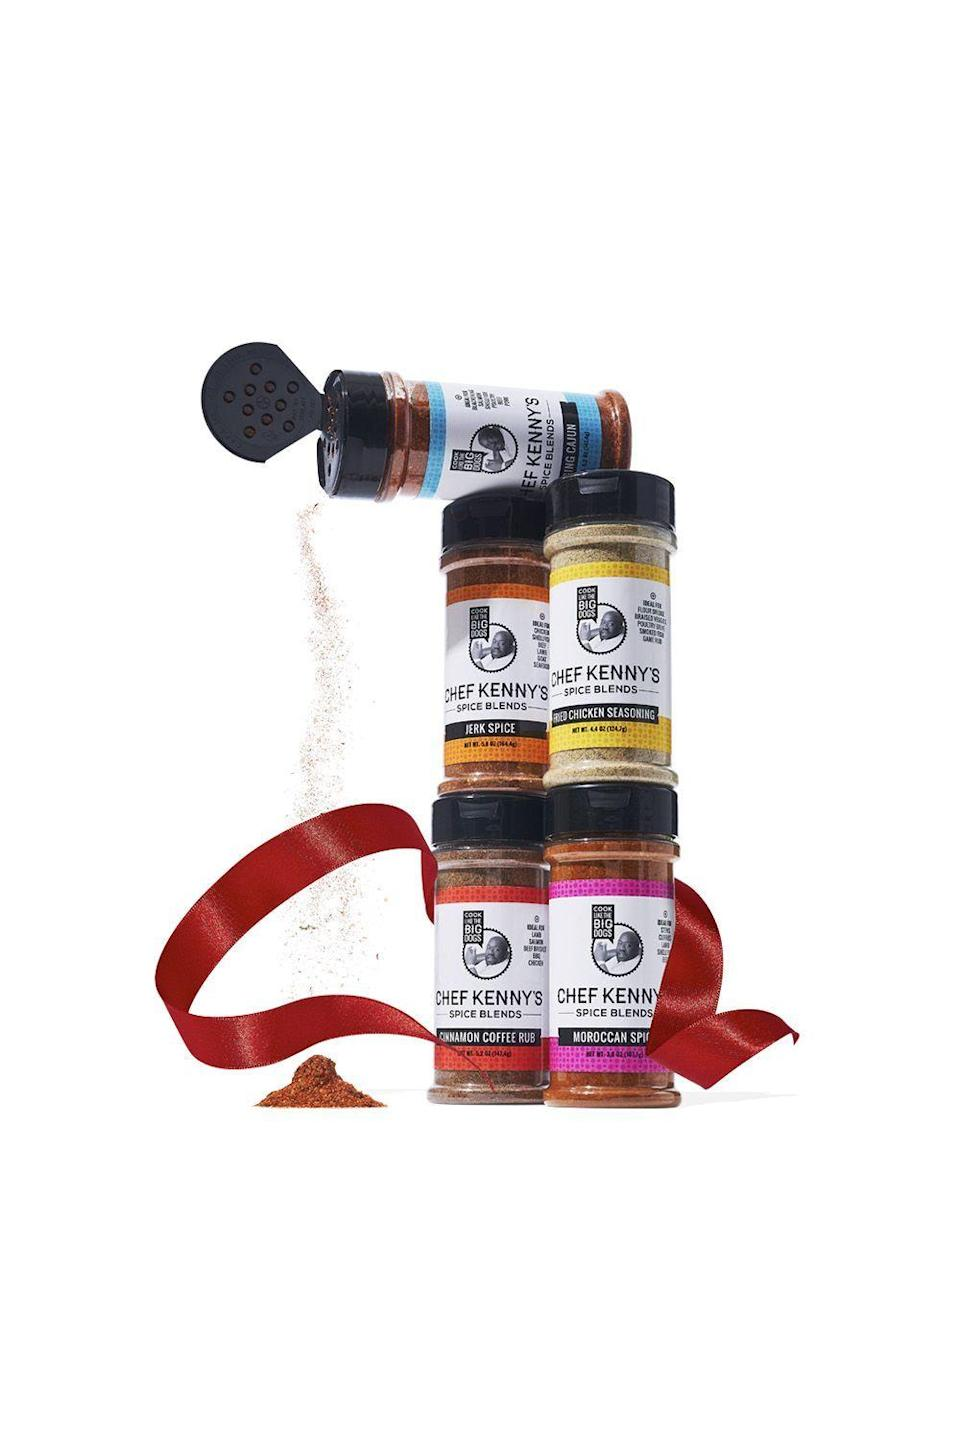 """<p><strong>Chef Kenny's Spice Blends</strong></p><p>amazon.com</p><p><strong>$39.99</strong></p><p><a href=""""https://www.amazon.com/dp/B08KJQ6R7F?tag=syn-yahoo-20&ascsubtag=%5Bartid%7C10050.g.34621586%5Bsrc%7Cyahoo-us"""" rel=""""nofollow noopener"""" target=""""_blank"""" data-ylk=""""slk:SHOP NOW"""" class=""""link rapid-noclick-resp"""">SHOP NOW</a></p><p>Most cooking starts before the ingredients even hit the pan, and the best home chefs always keep expertly blended seasonings stocked in their culinary arsenal. These rubs are the secret flavor bomb to instantly elevate your steaks, roasts, and chops. Oprah says the fried-chicken seasoning should be declared a national treasure. Count us in!</p>"""